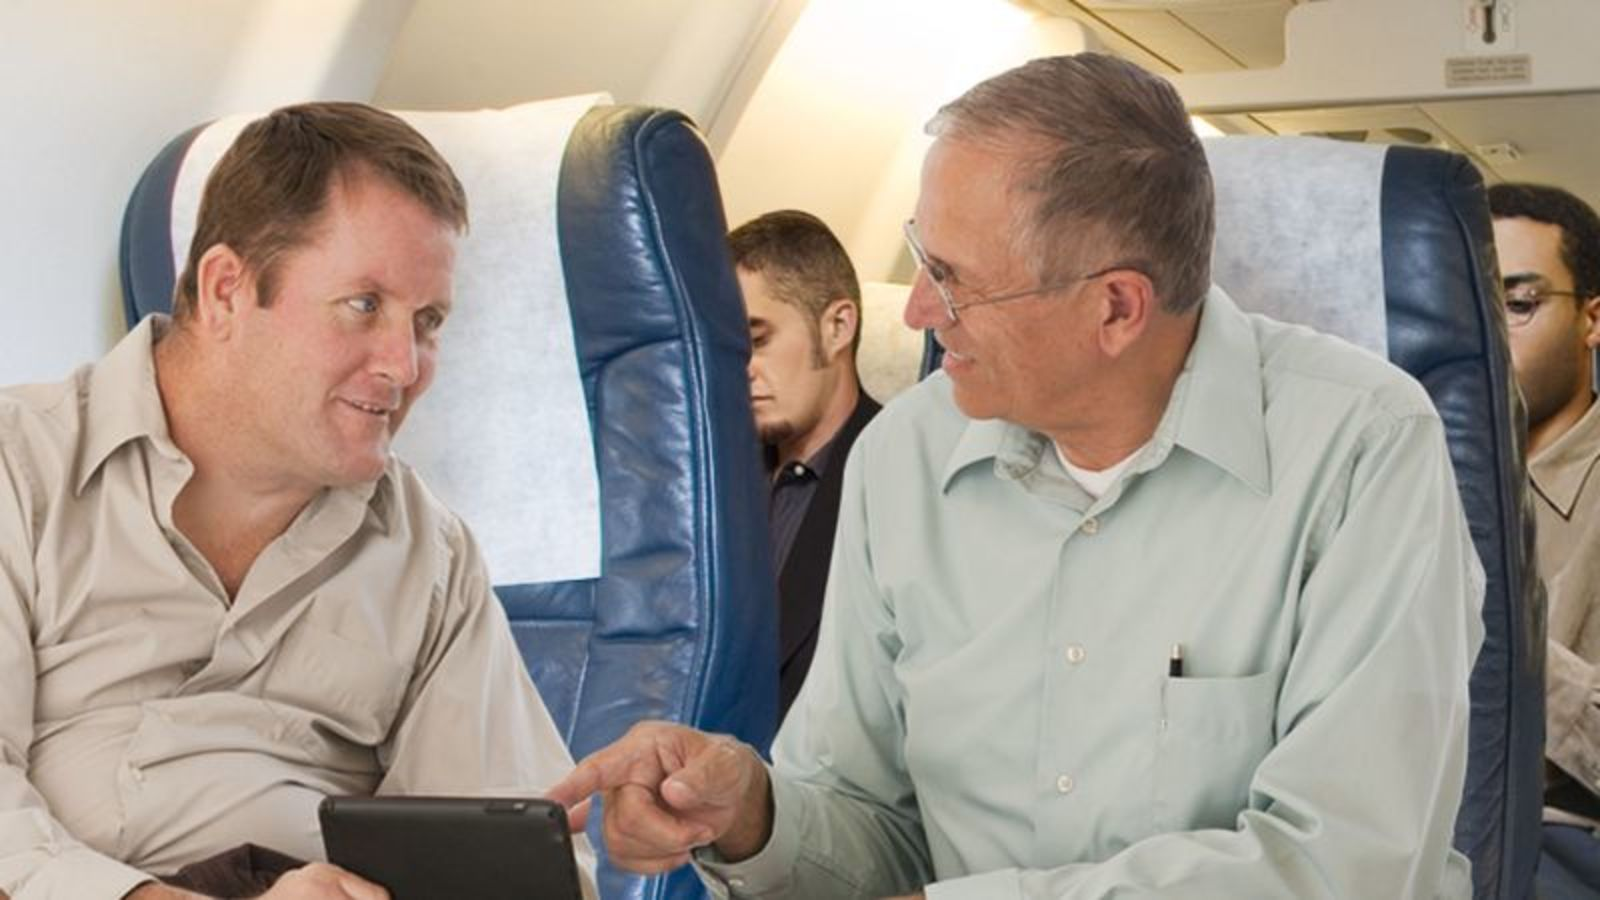 Guys With Boring Jobs Really Hitting It Off A Few Rows Back On Airplane https://t.co/oYssOxHhu6 https://t.co/qdsLFQAqGt